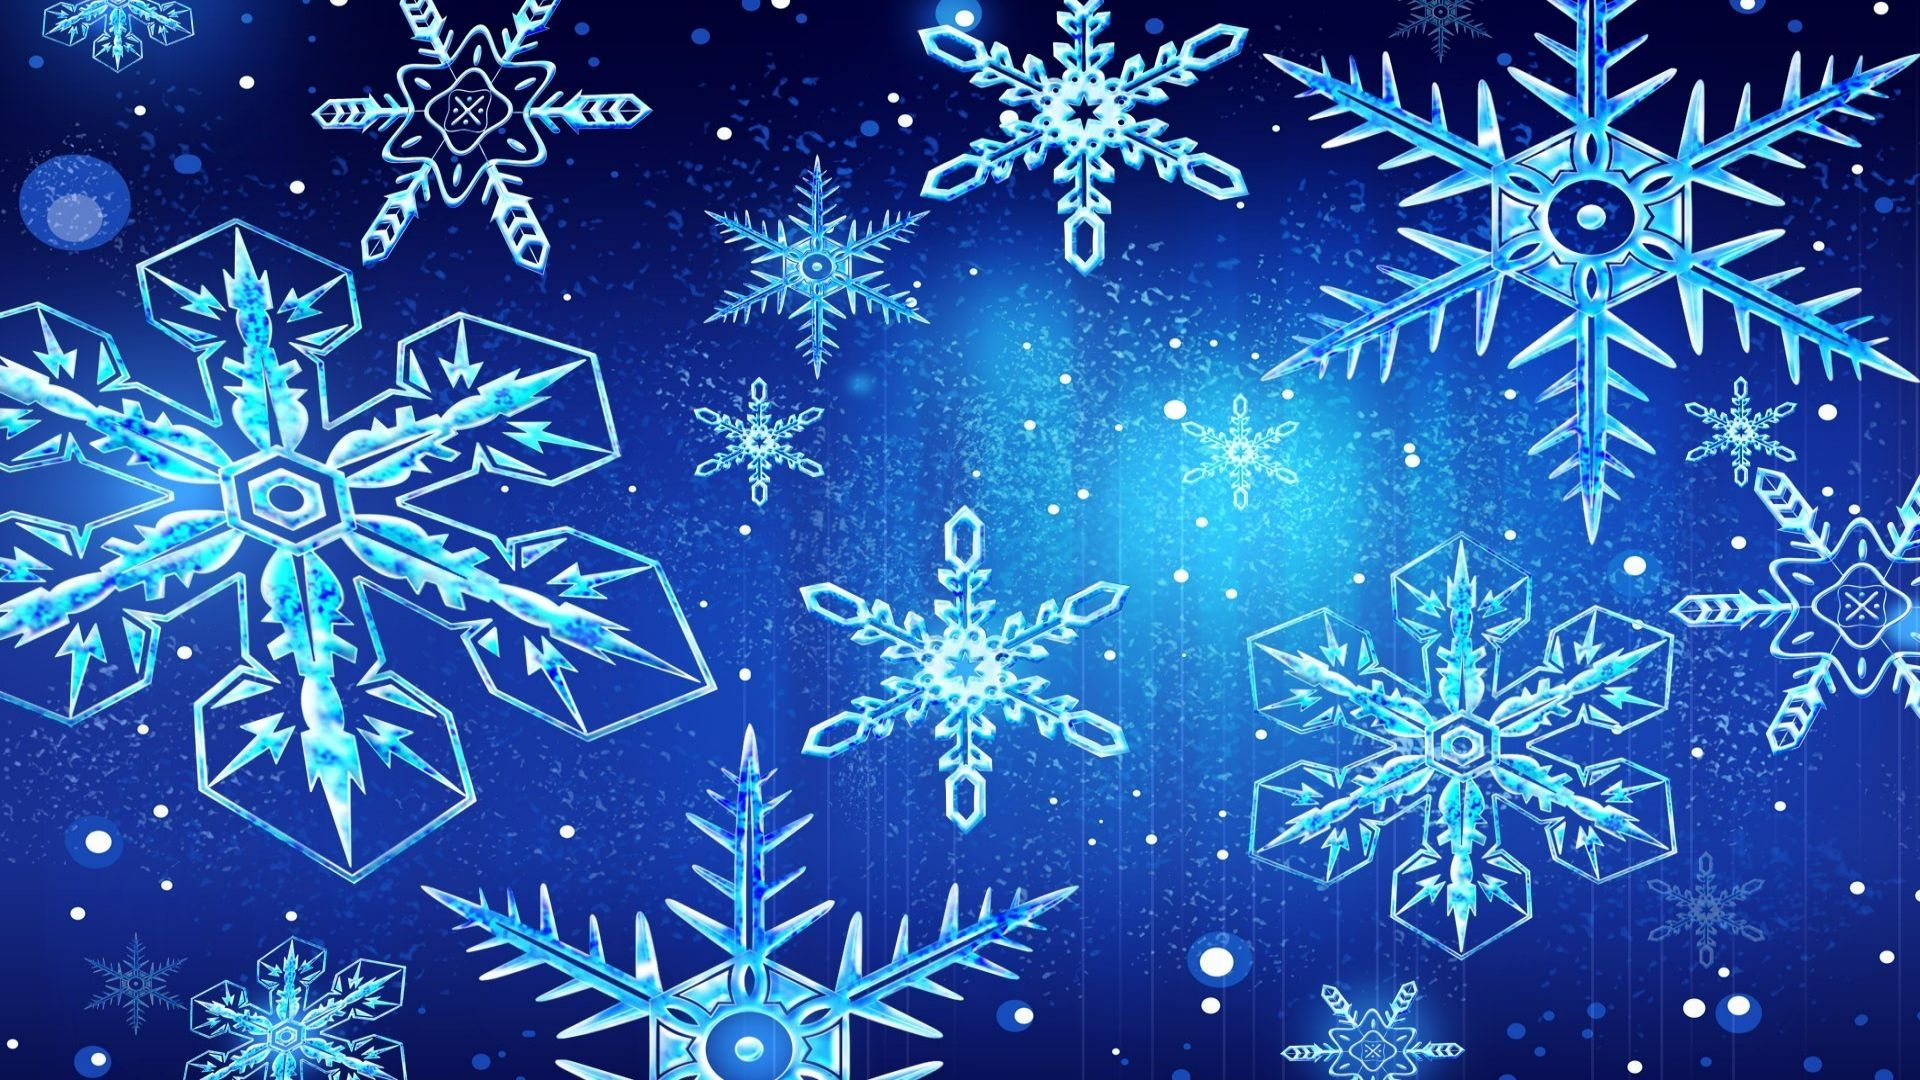 New Year With Snowflakes Free Wallpaper